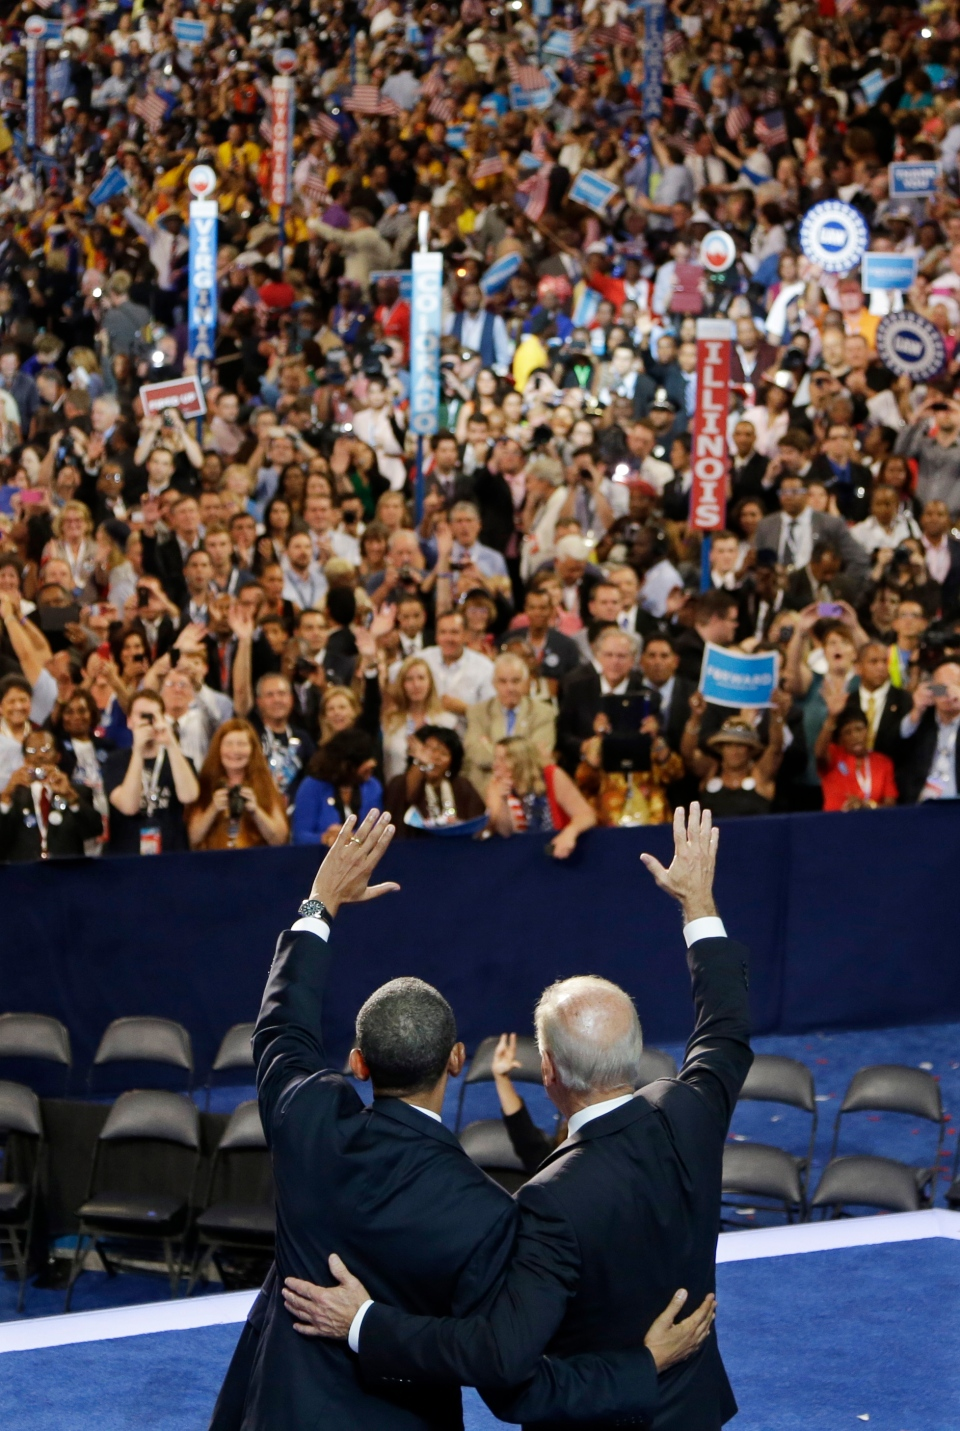 U.S. President Barack Obama and U.S. Vice President Joe Biden wave to delegates at the Democratic National Convention in Charlotte, N.C., on Thursday, Sept. 6, 2012. (AP / Charlie Neibergall)